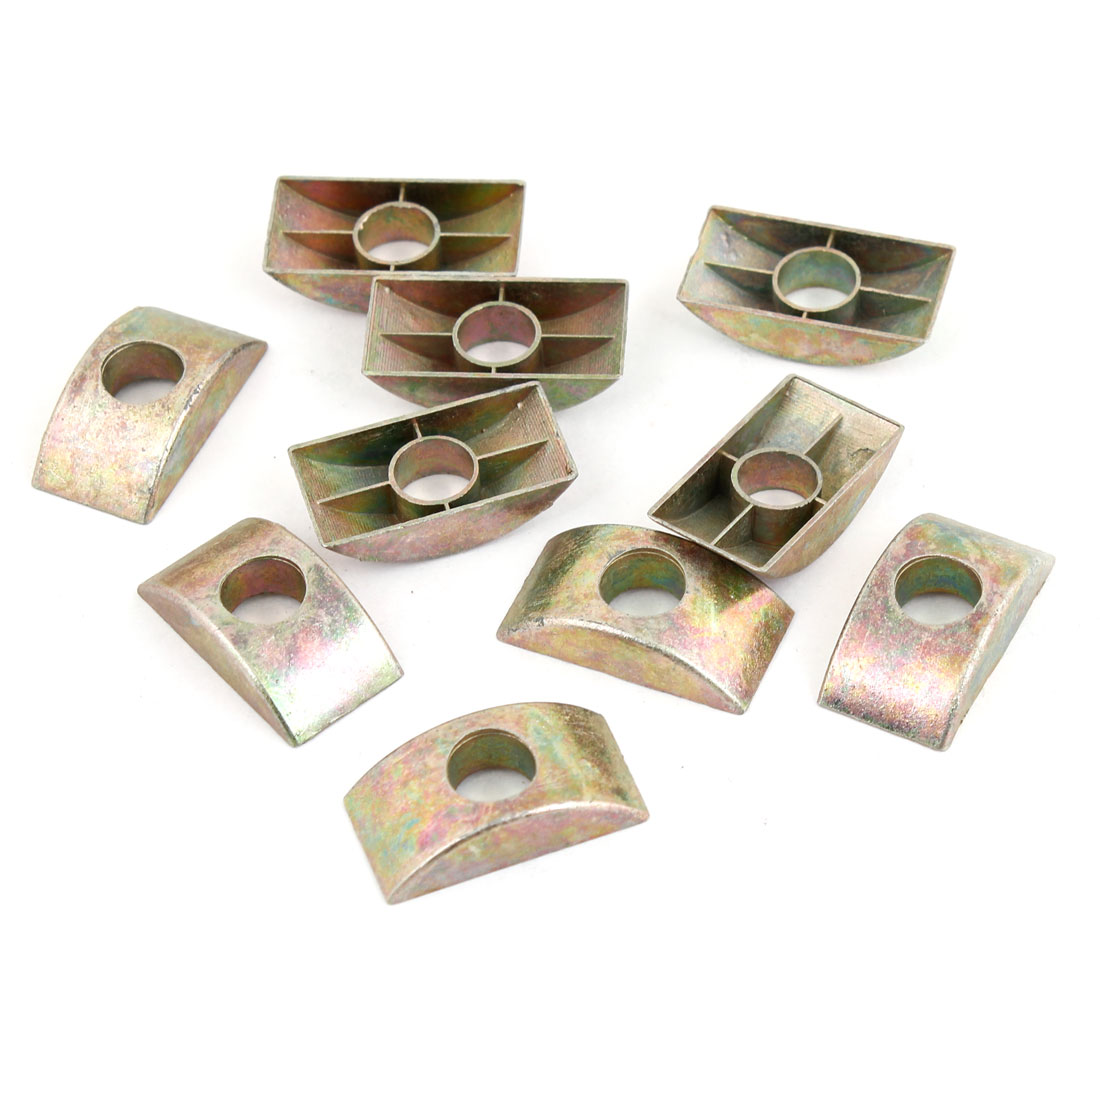 10 X Bronze Tone 8.5mm Hole Furniture Connector Half Moon Nuts